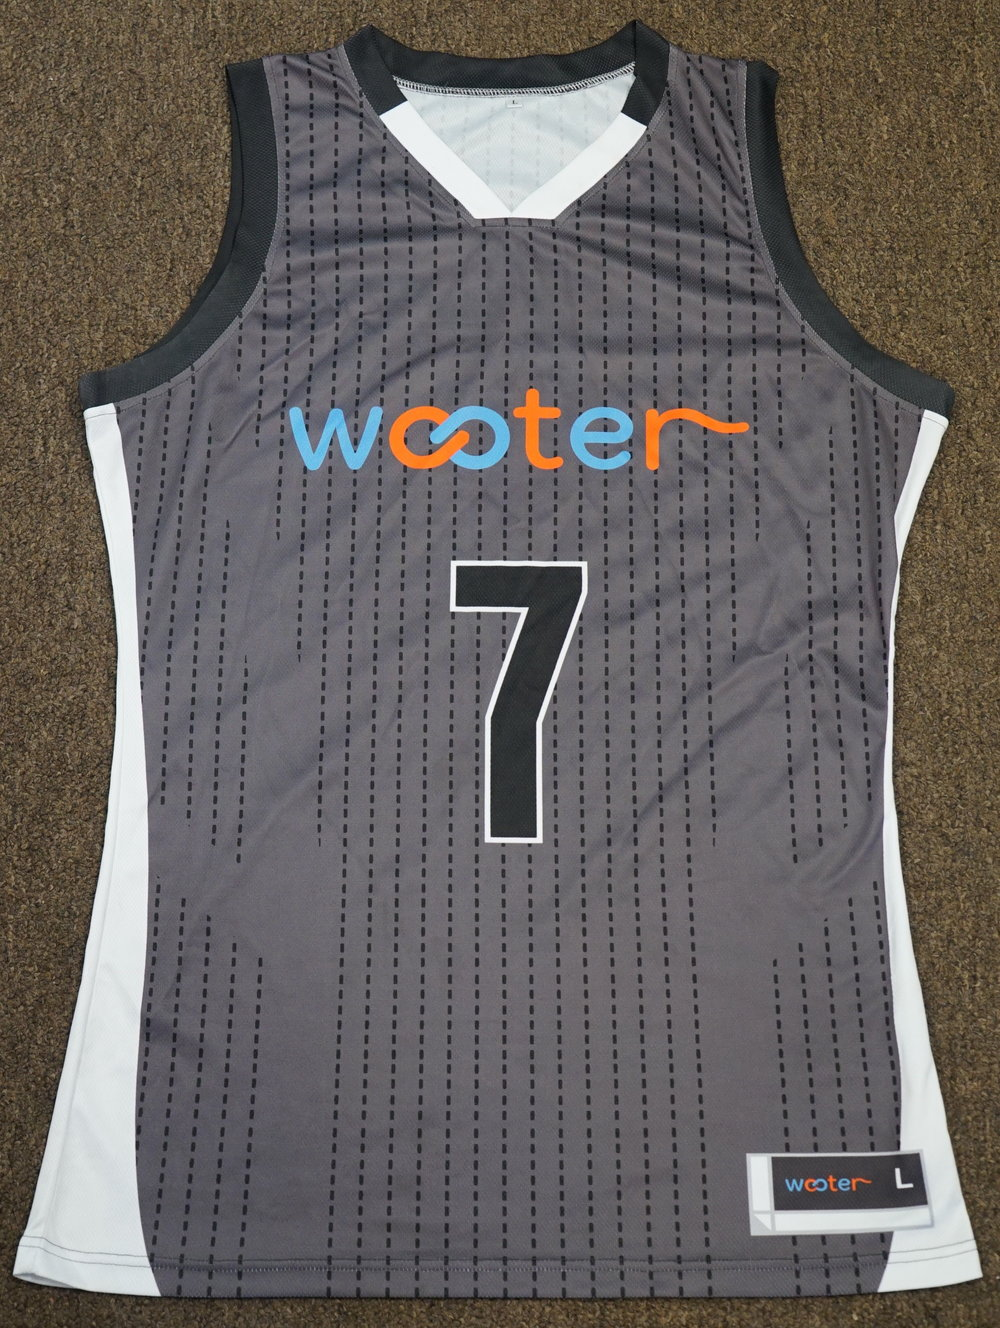 WOOTER Black Grey Sky Blue Orange and White Vegas Gold Black Basketball Uniforms, Jerseys